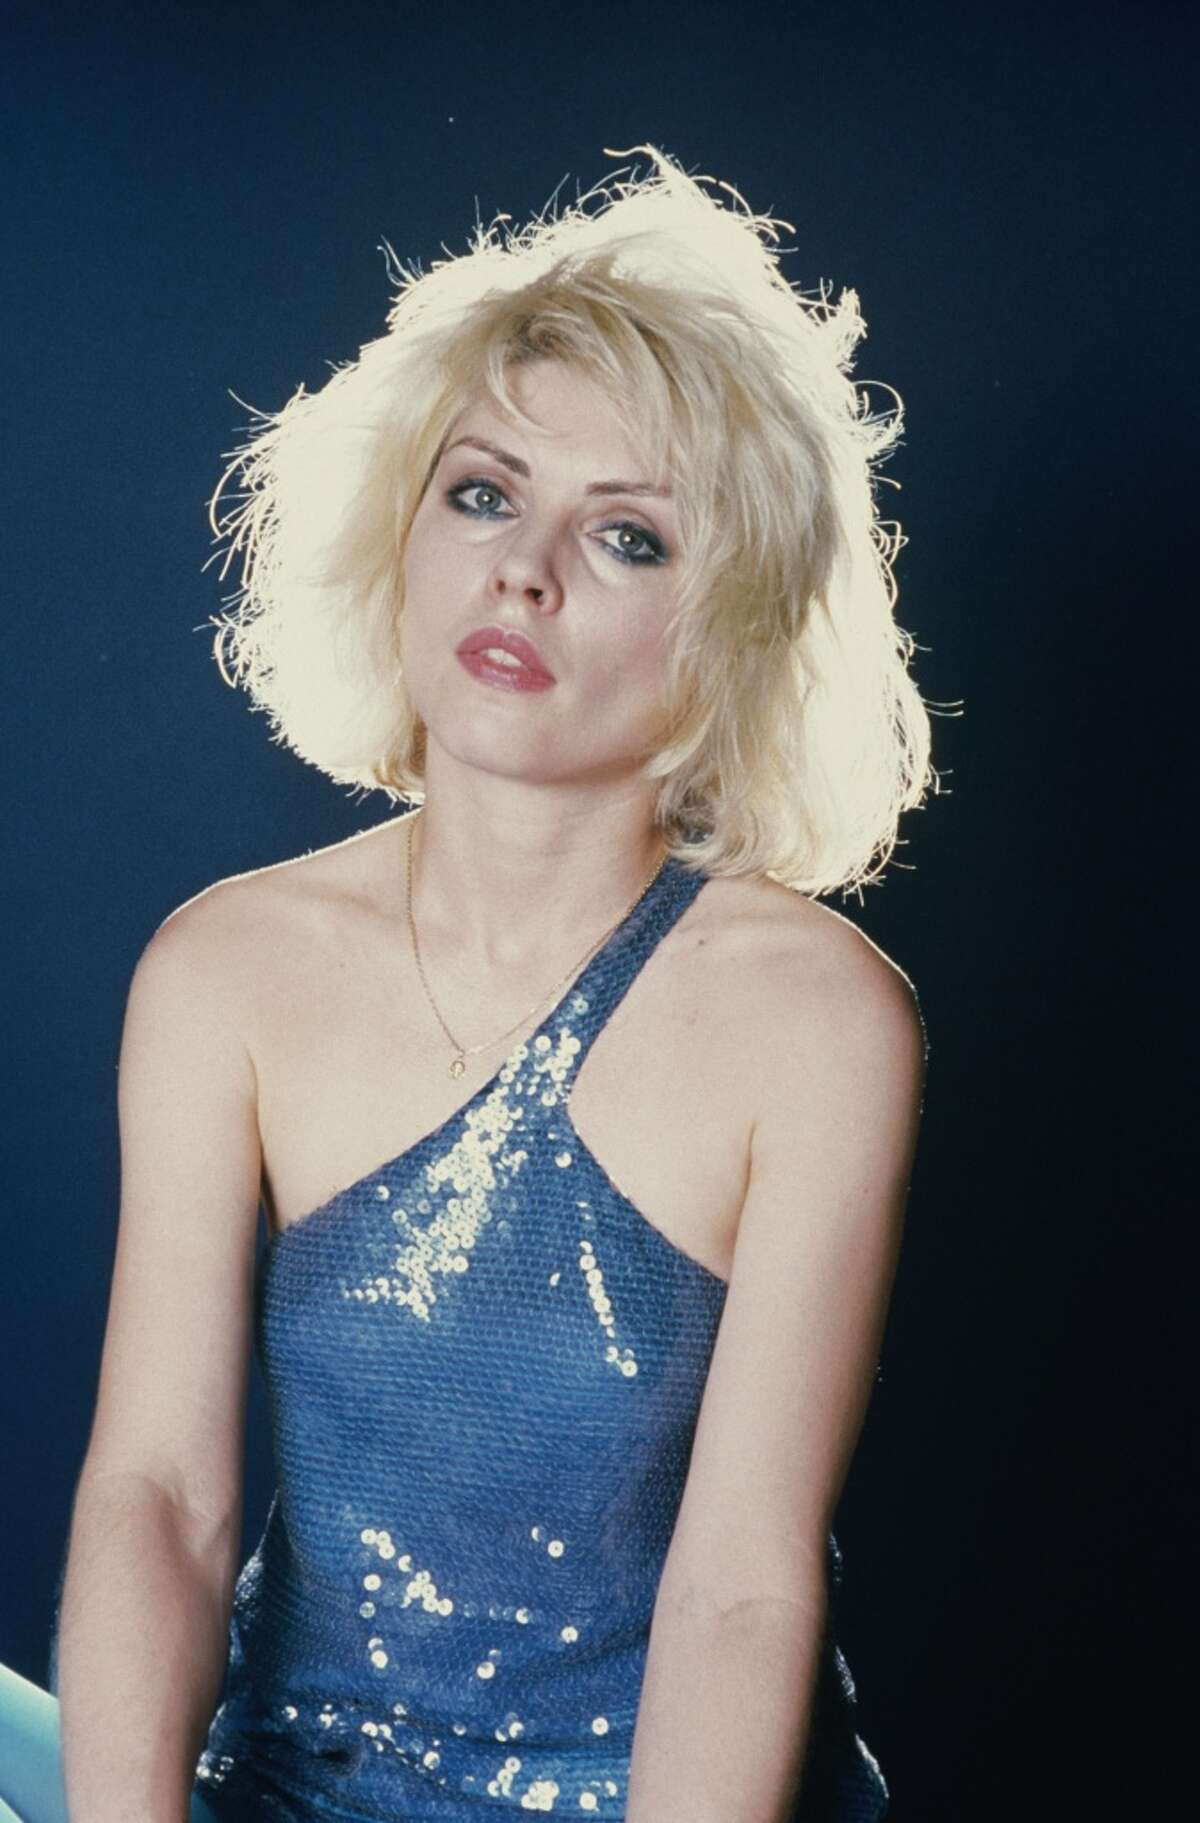 Debbie Harry was the lead singer of Blondie. But the name seems to apply only to her. Photo from 1979.